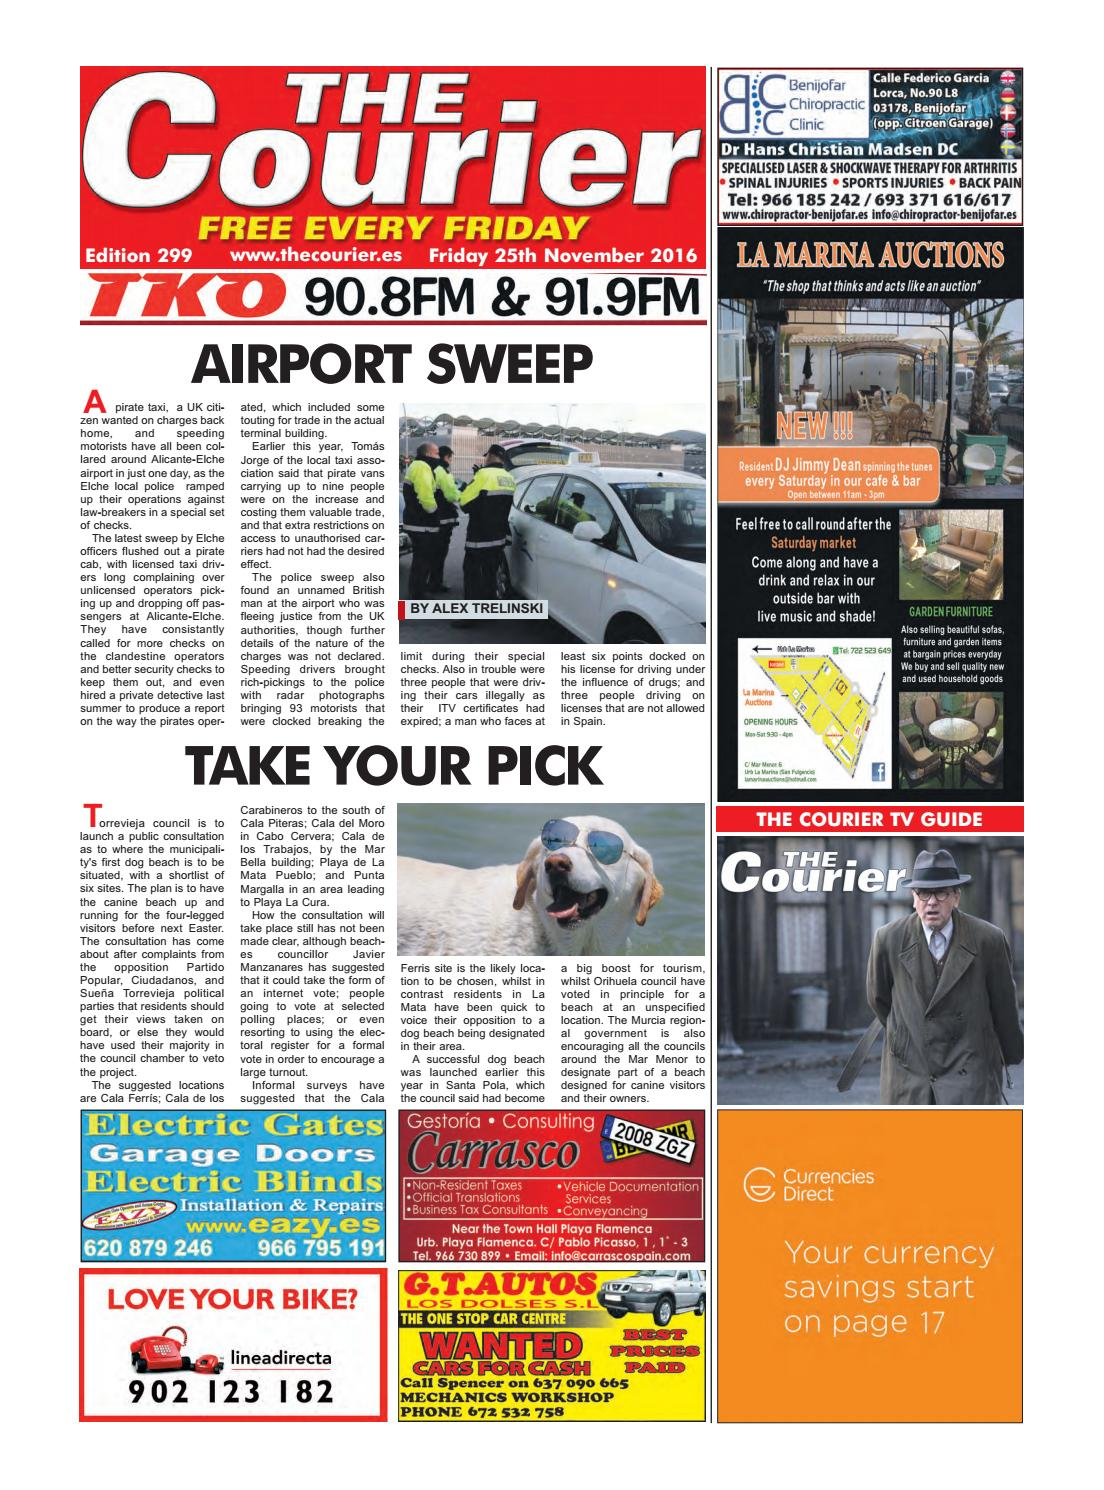 The Courier Edition 299 By The Courier Newspaper Issuu